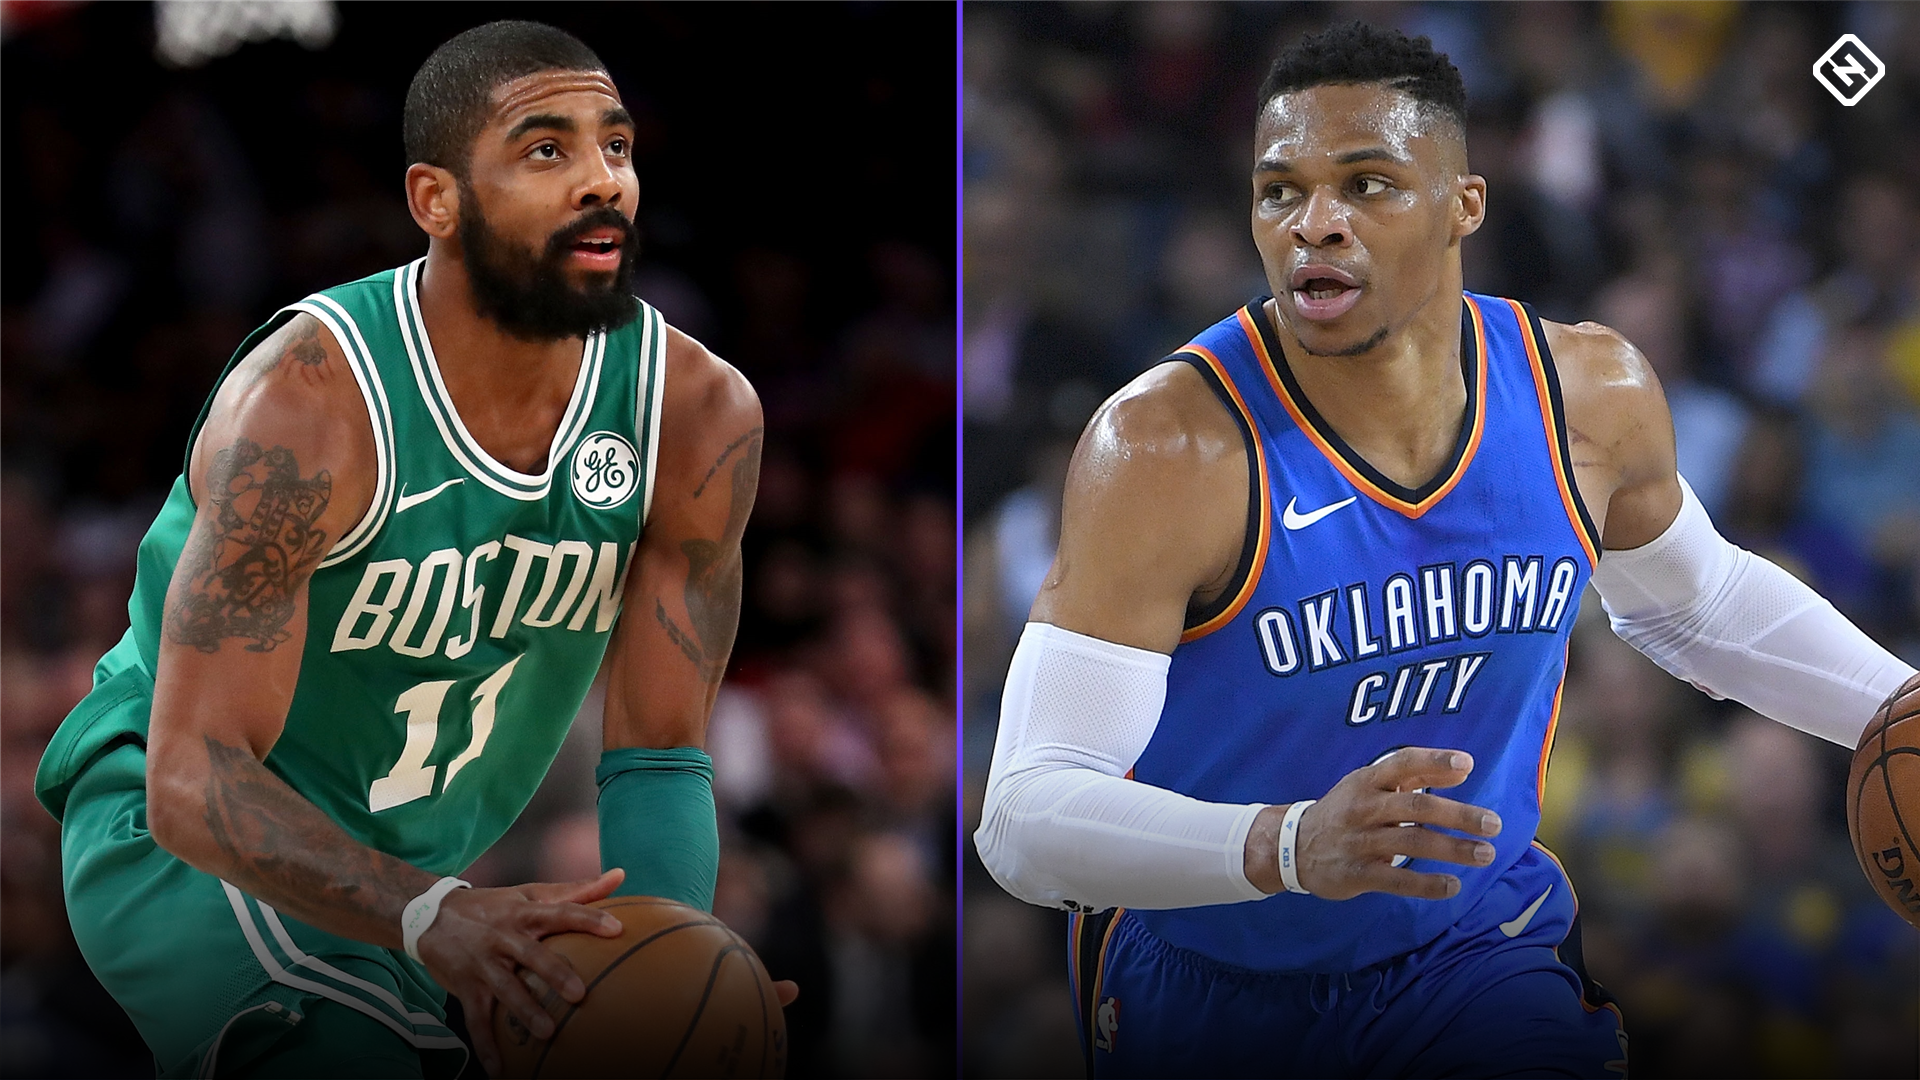 Celtics guard Kyrie Irving and Thunder guard Russell Westbrook